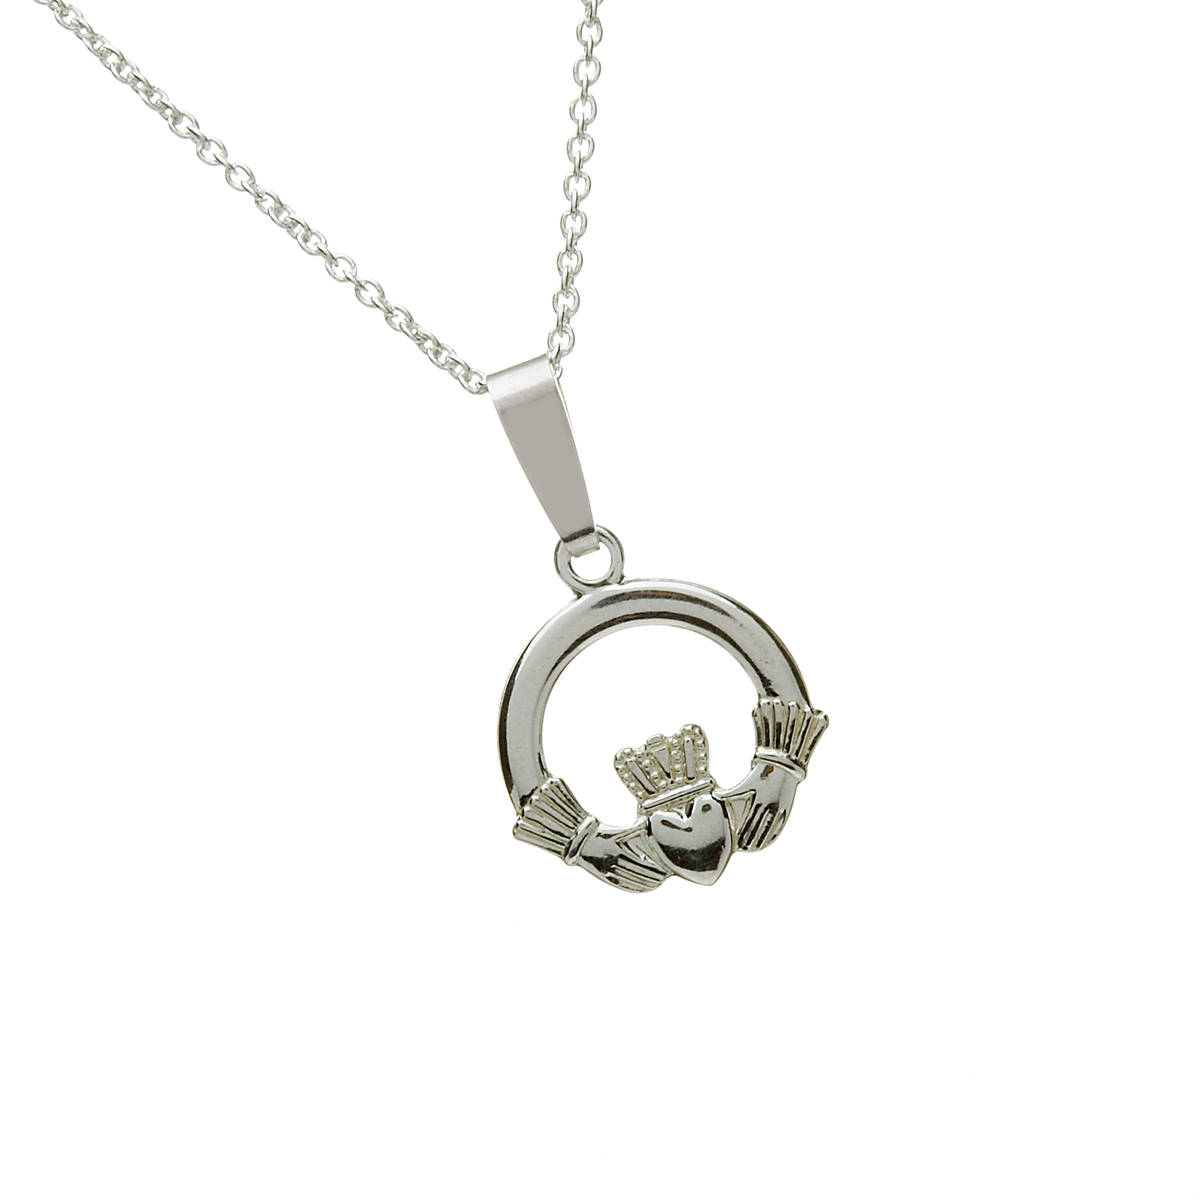 An inexpensive traditional claddagh pendant popular as a gift of friendship and love